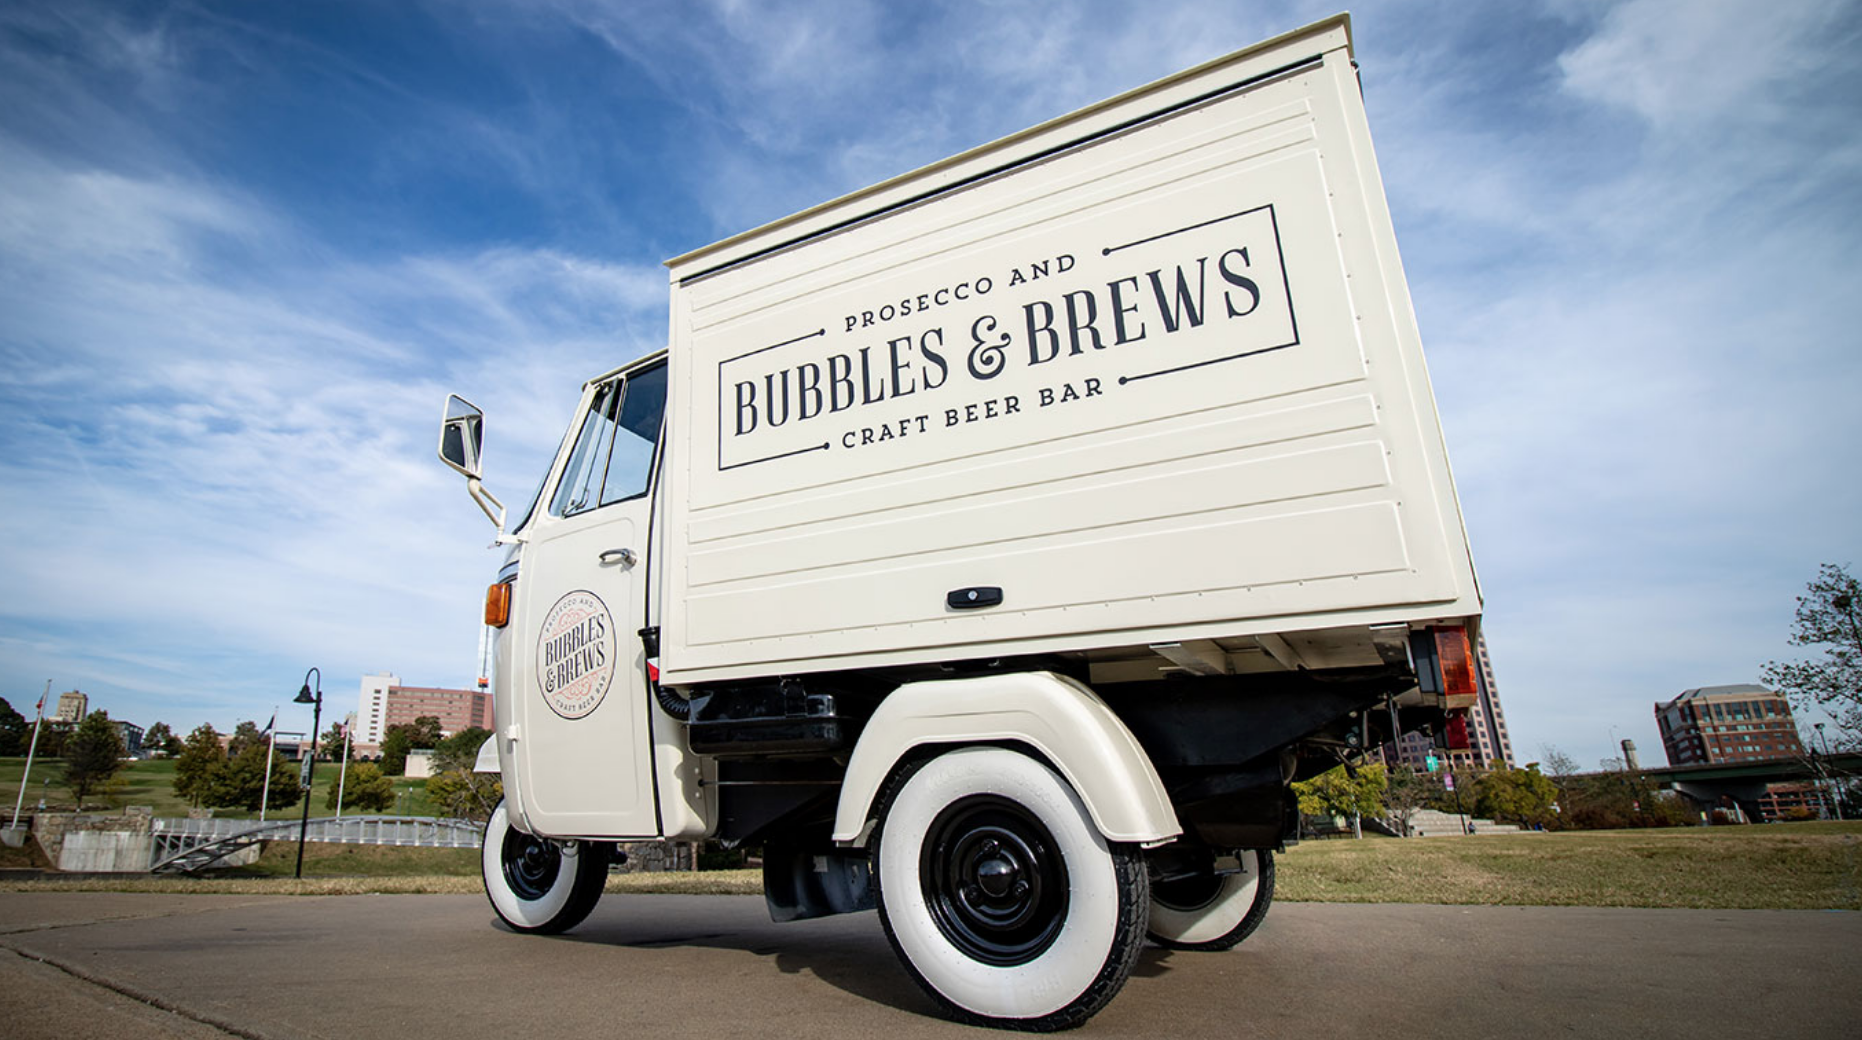 bubbles and brews vintage mobile bar event catering